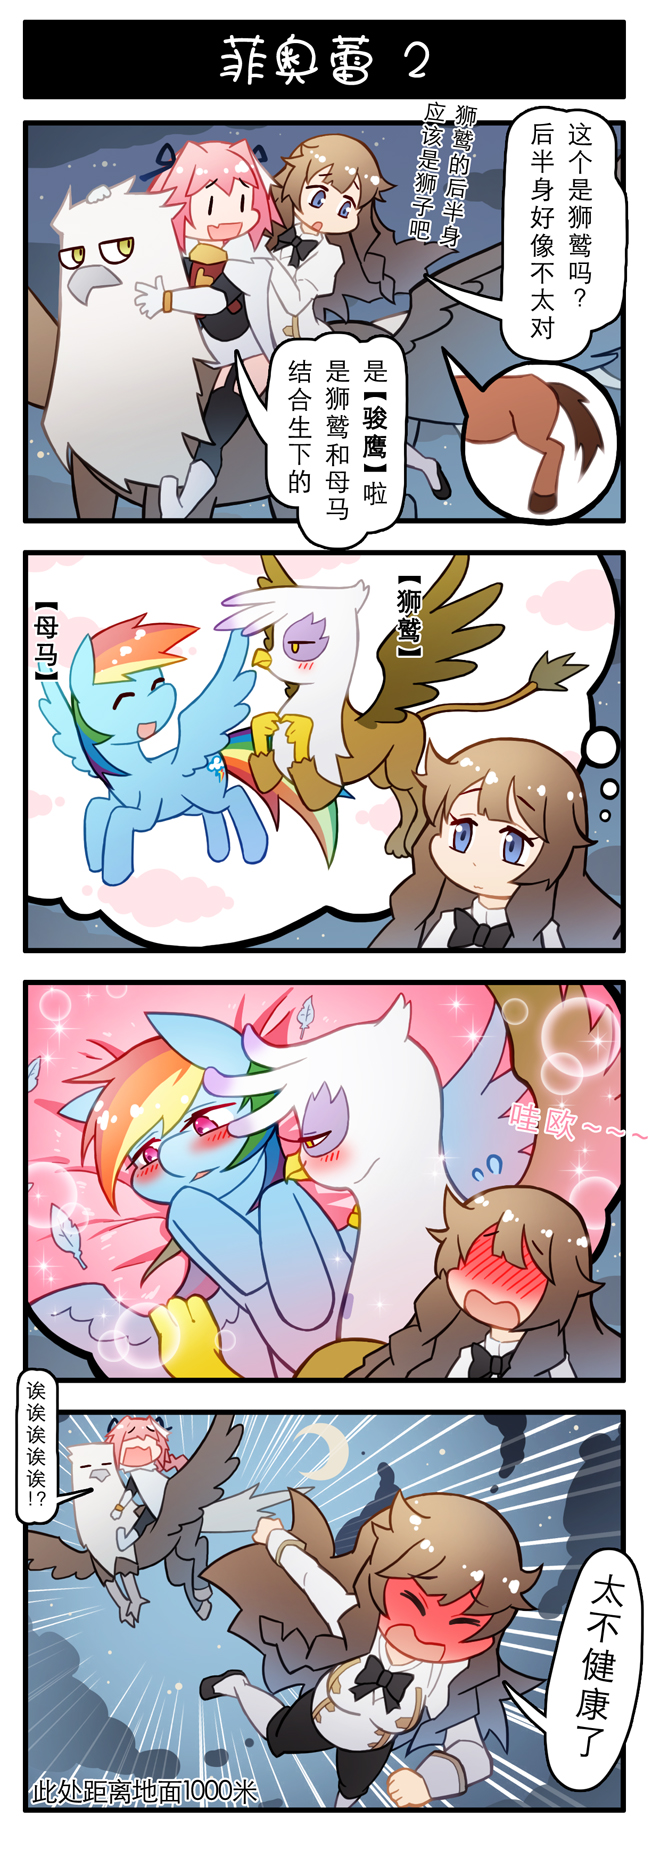 astolfo, fiore forvedge yggdmillennia, gilda, and rainbow dash (fate/apocrypha, fate (series), my little pony, and my little pony friendship is magic) drawn by xin yu hua yin